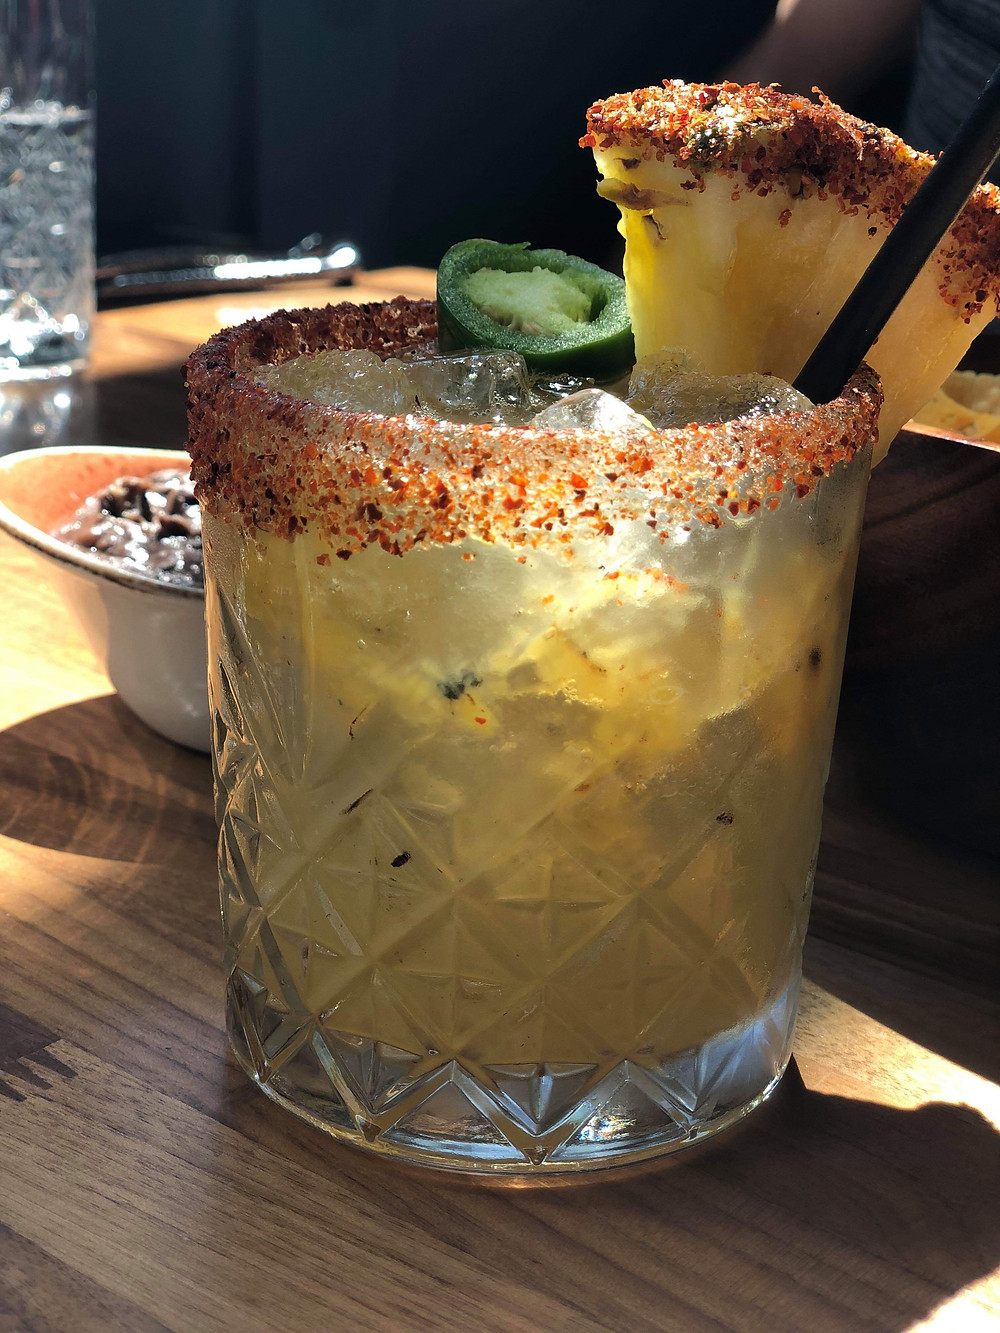 Grilled pineapple and chili margarita at Calo Kitchen and Tequila